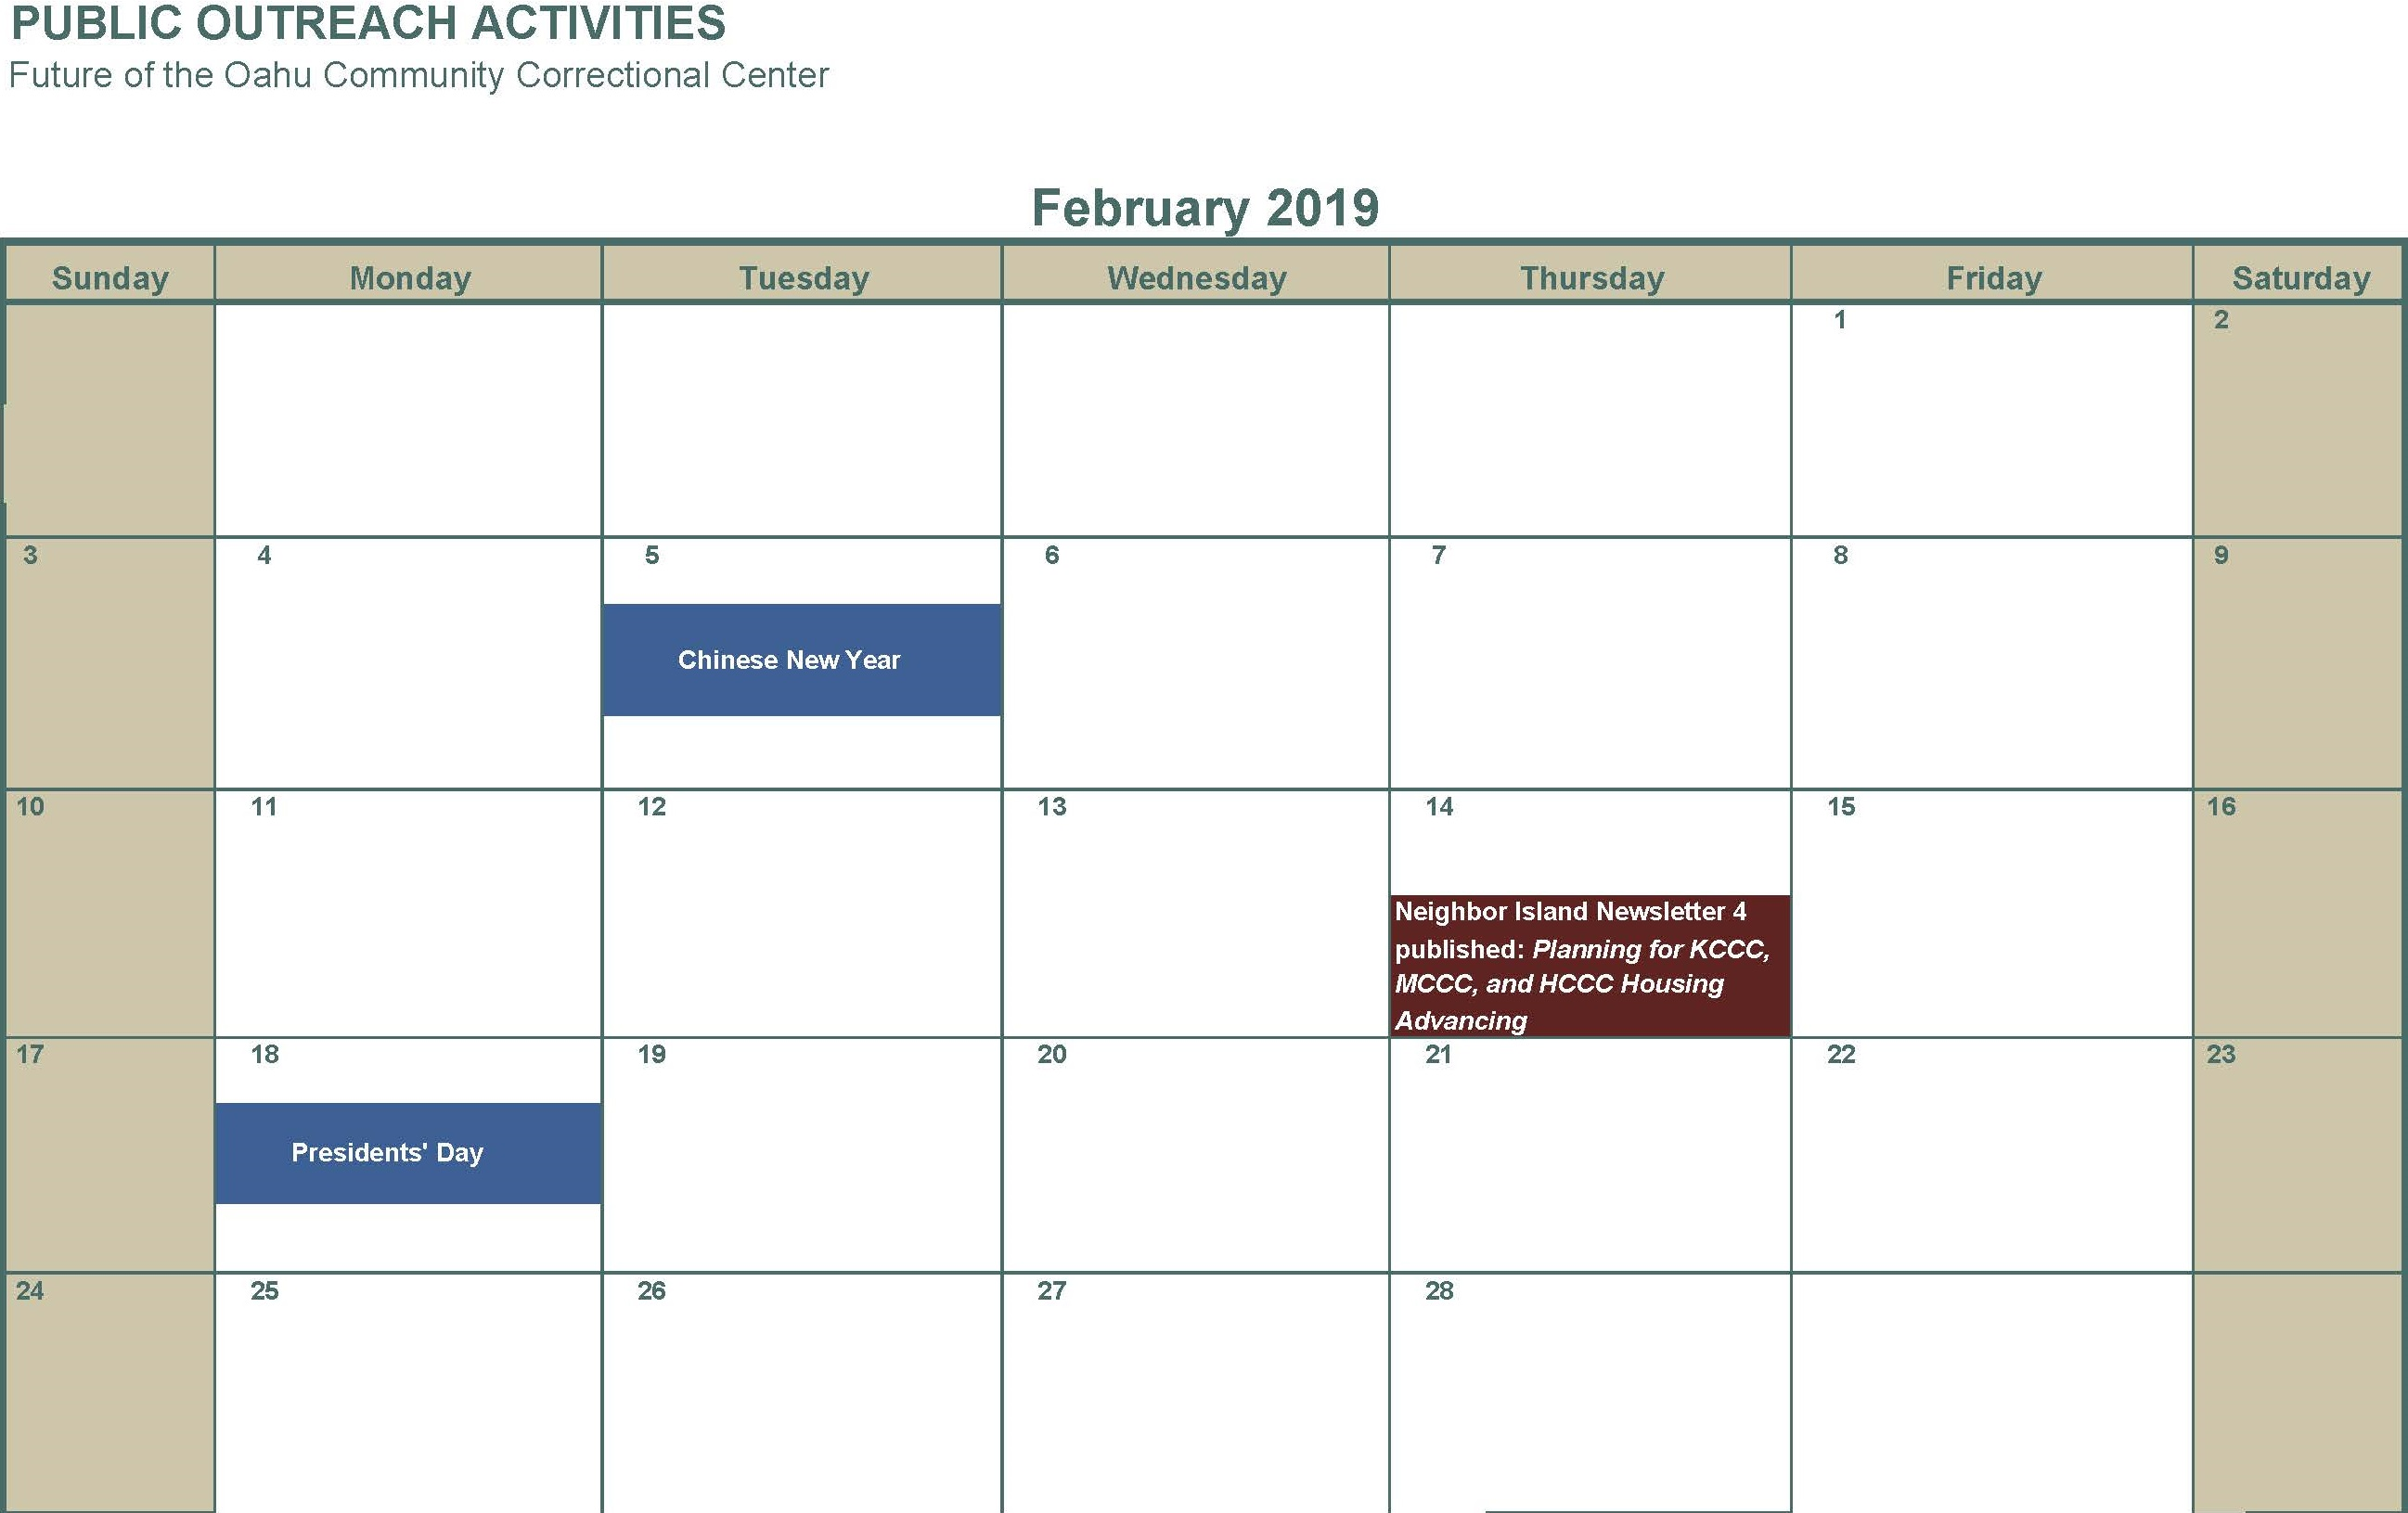 February 2019 Newsletter Planning for KCCC MCCC and HCCC Housing